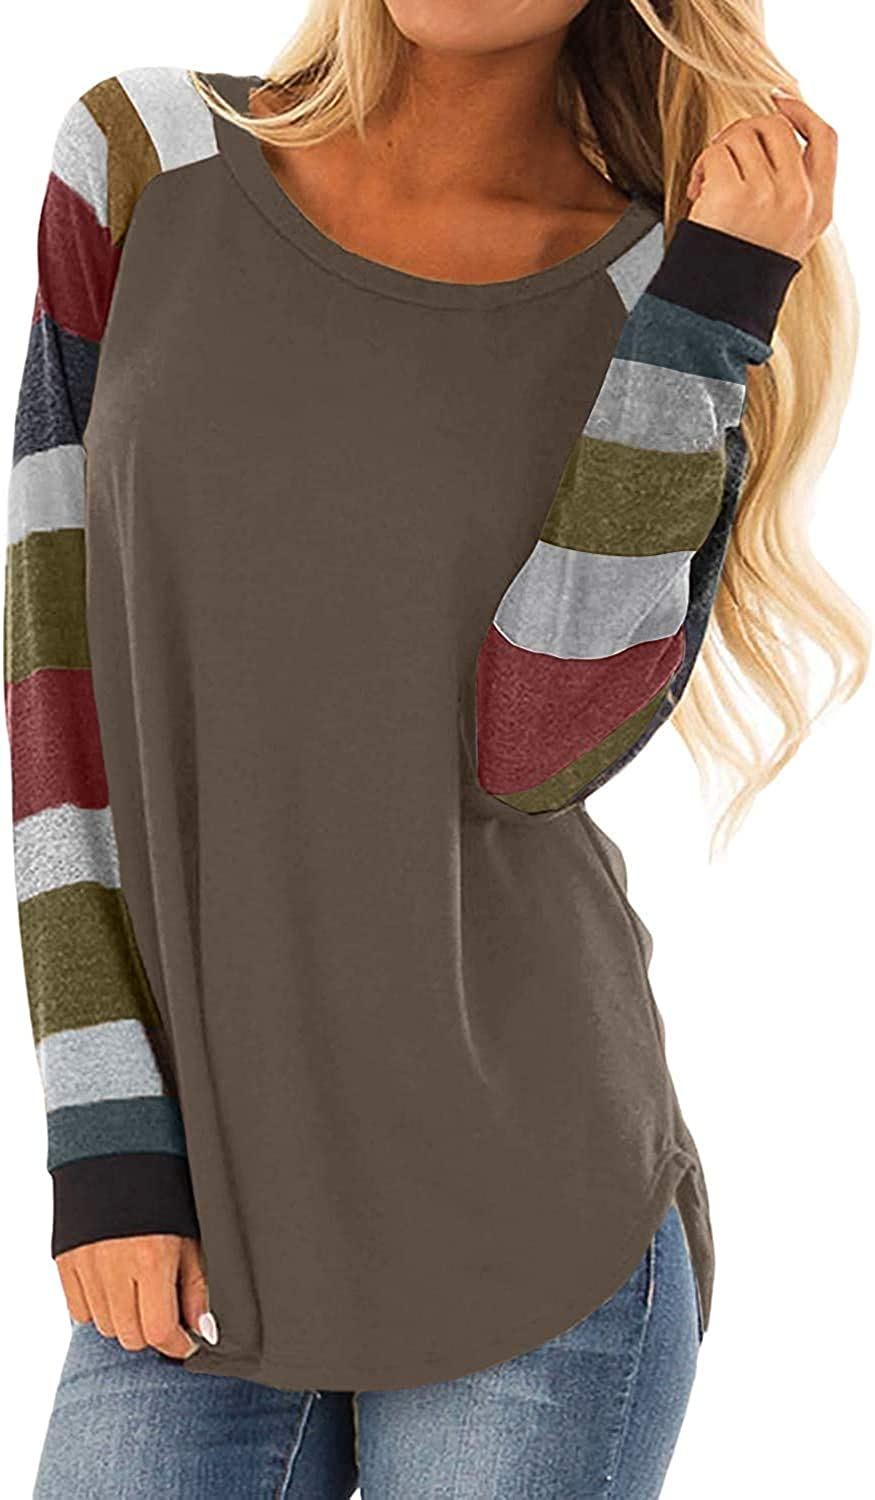 Women's Round Neck Causal Long Sleeve Tops Loose Soft Striped Tunic Blouse Tops